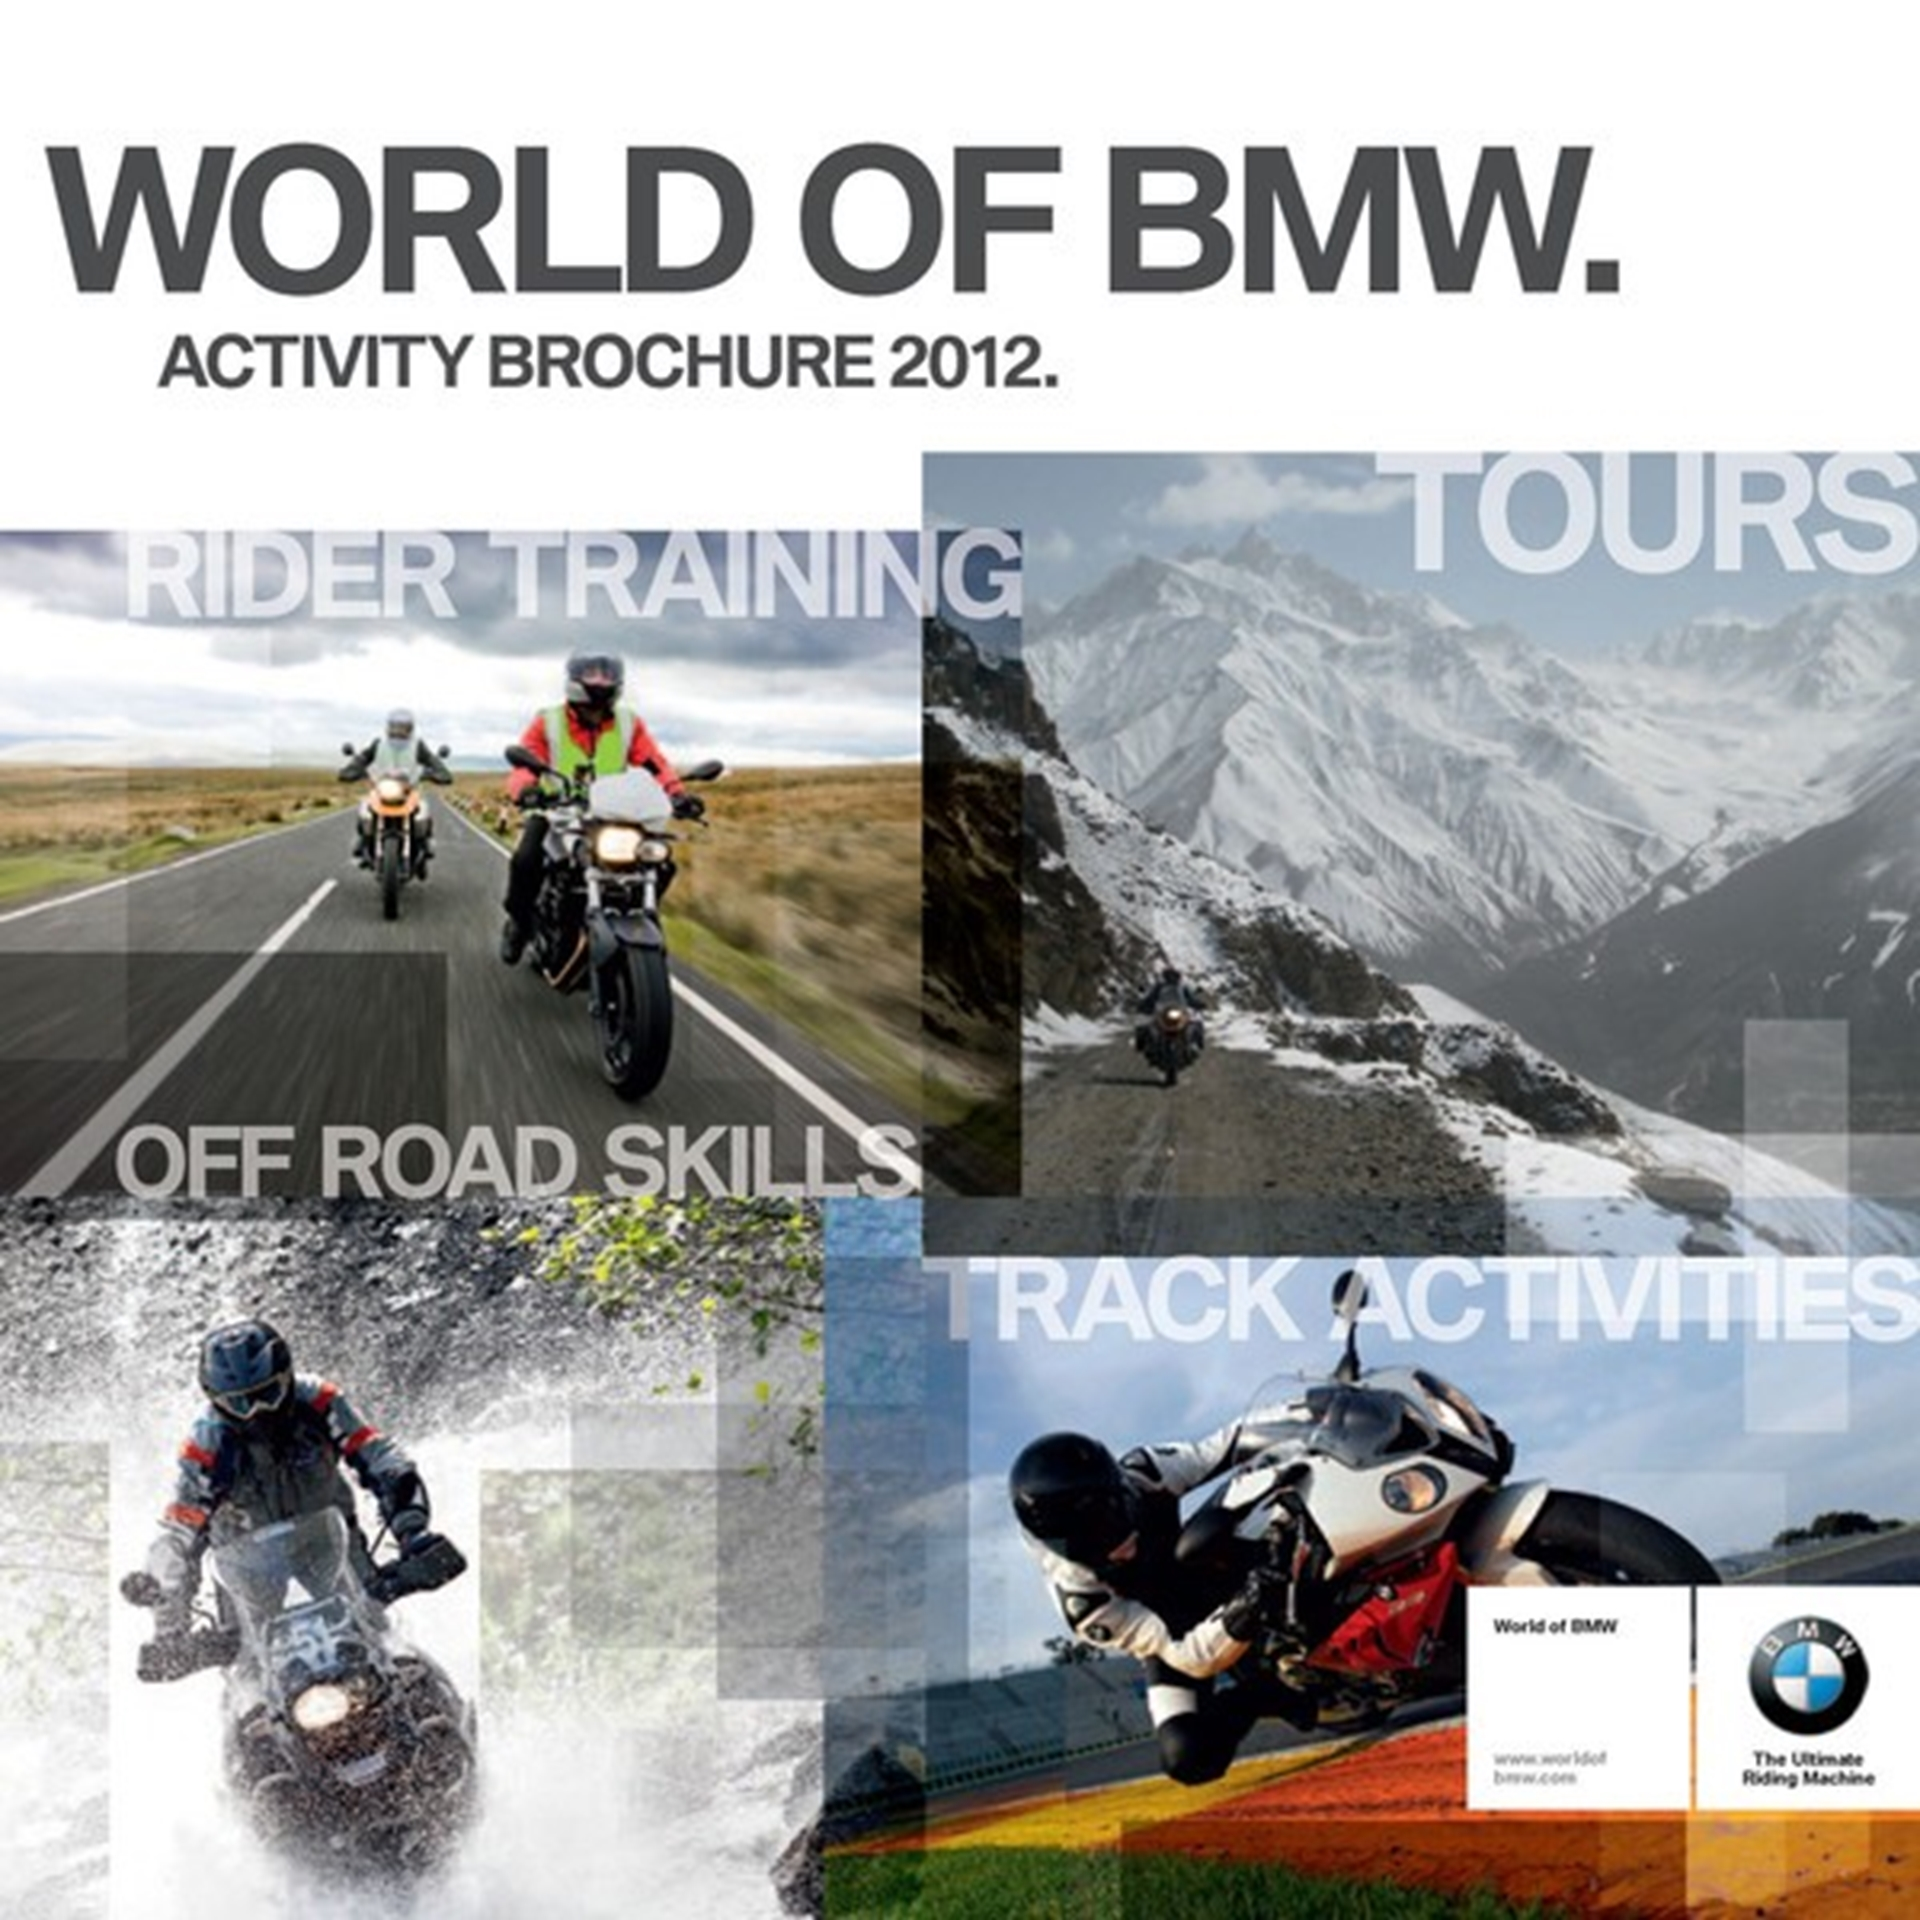 2012 world of bmw activity brochure